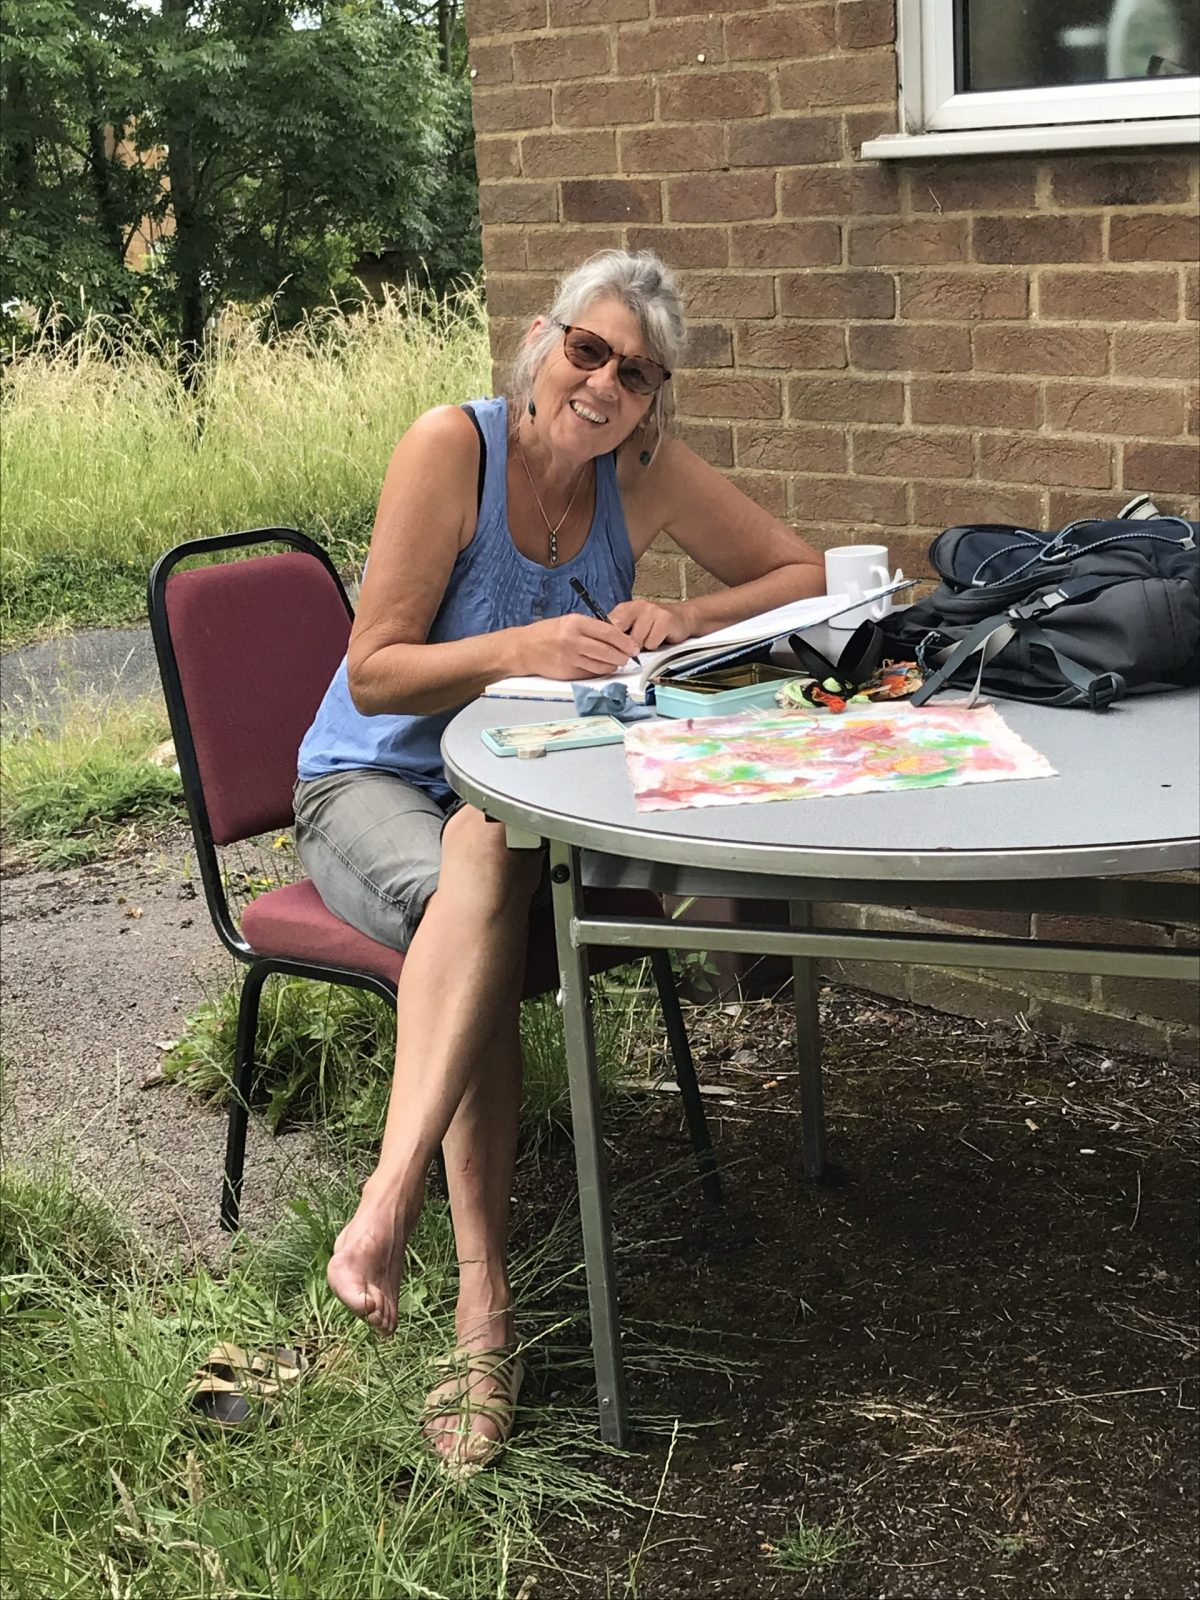 Isabel enjoying art group outdoors